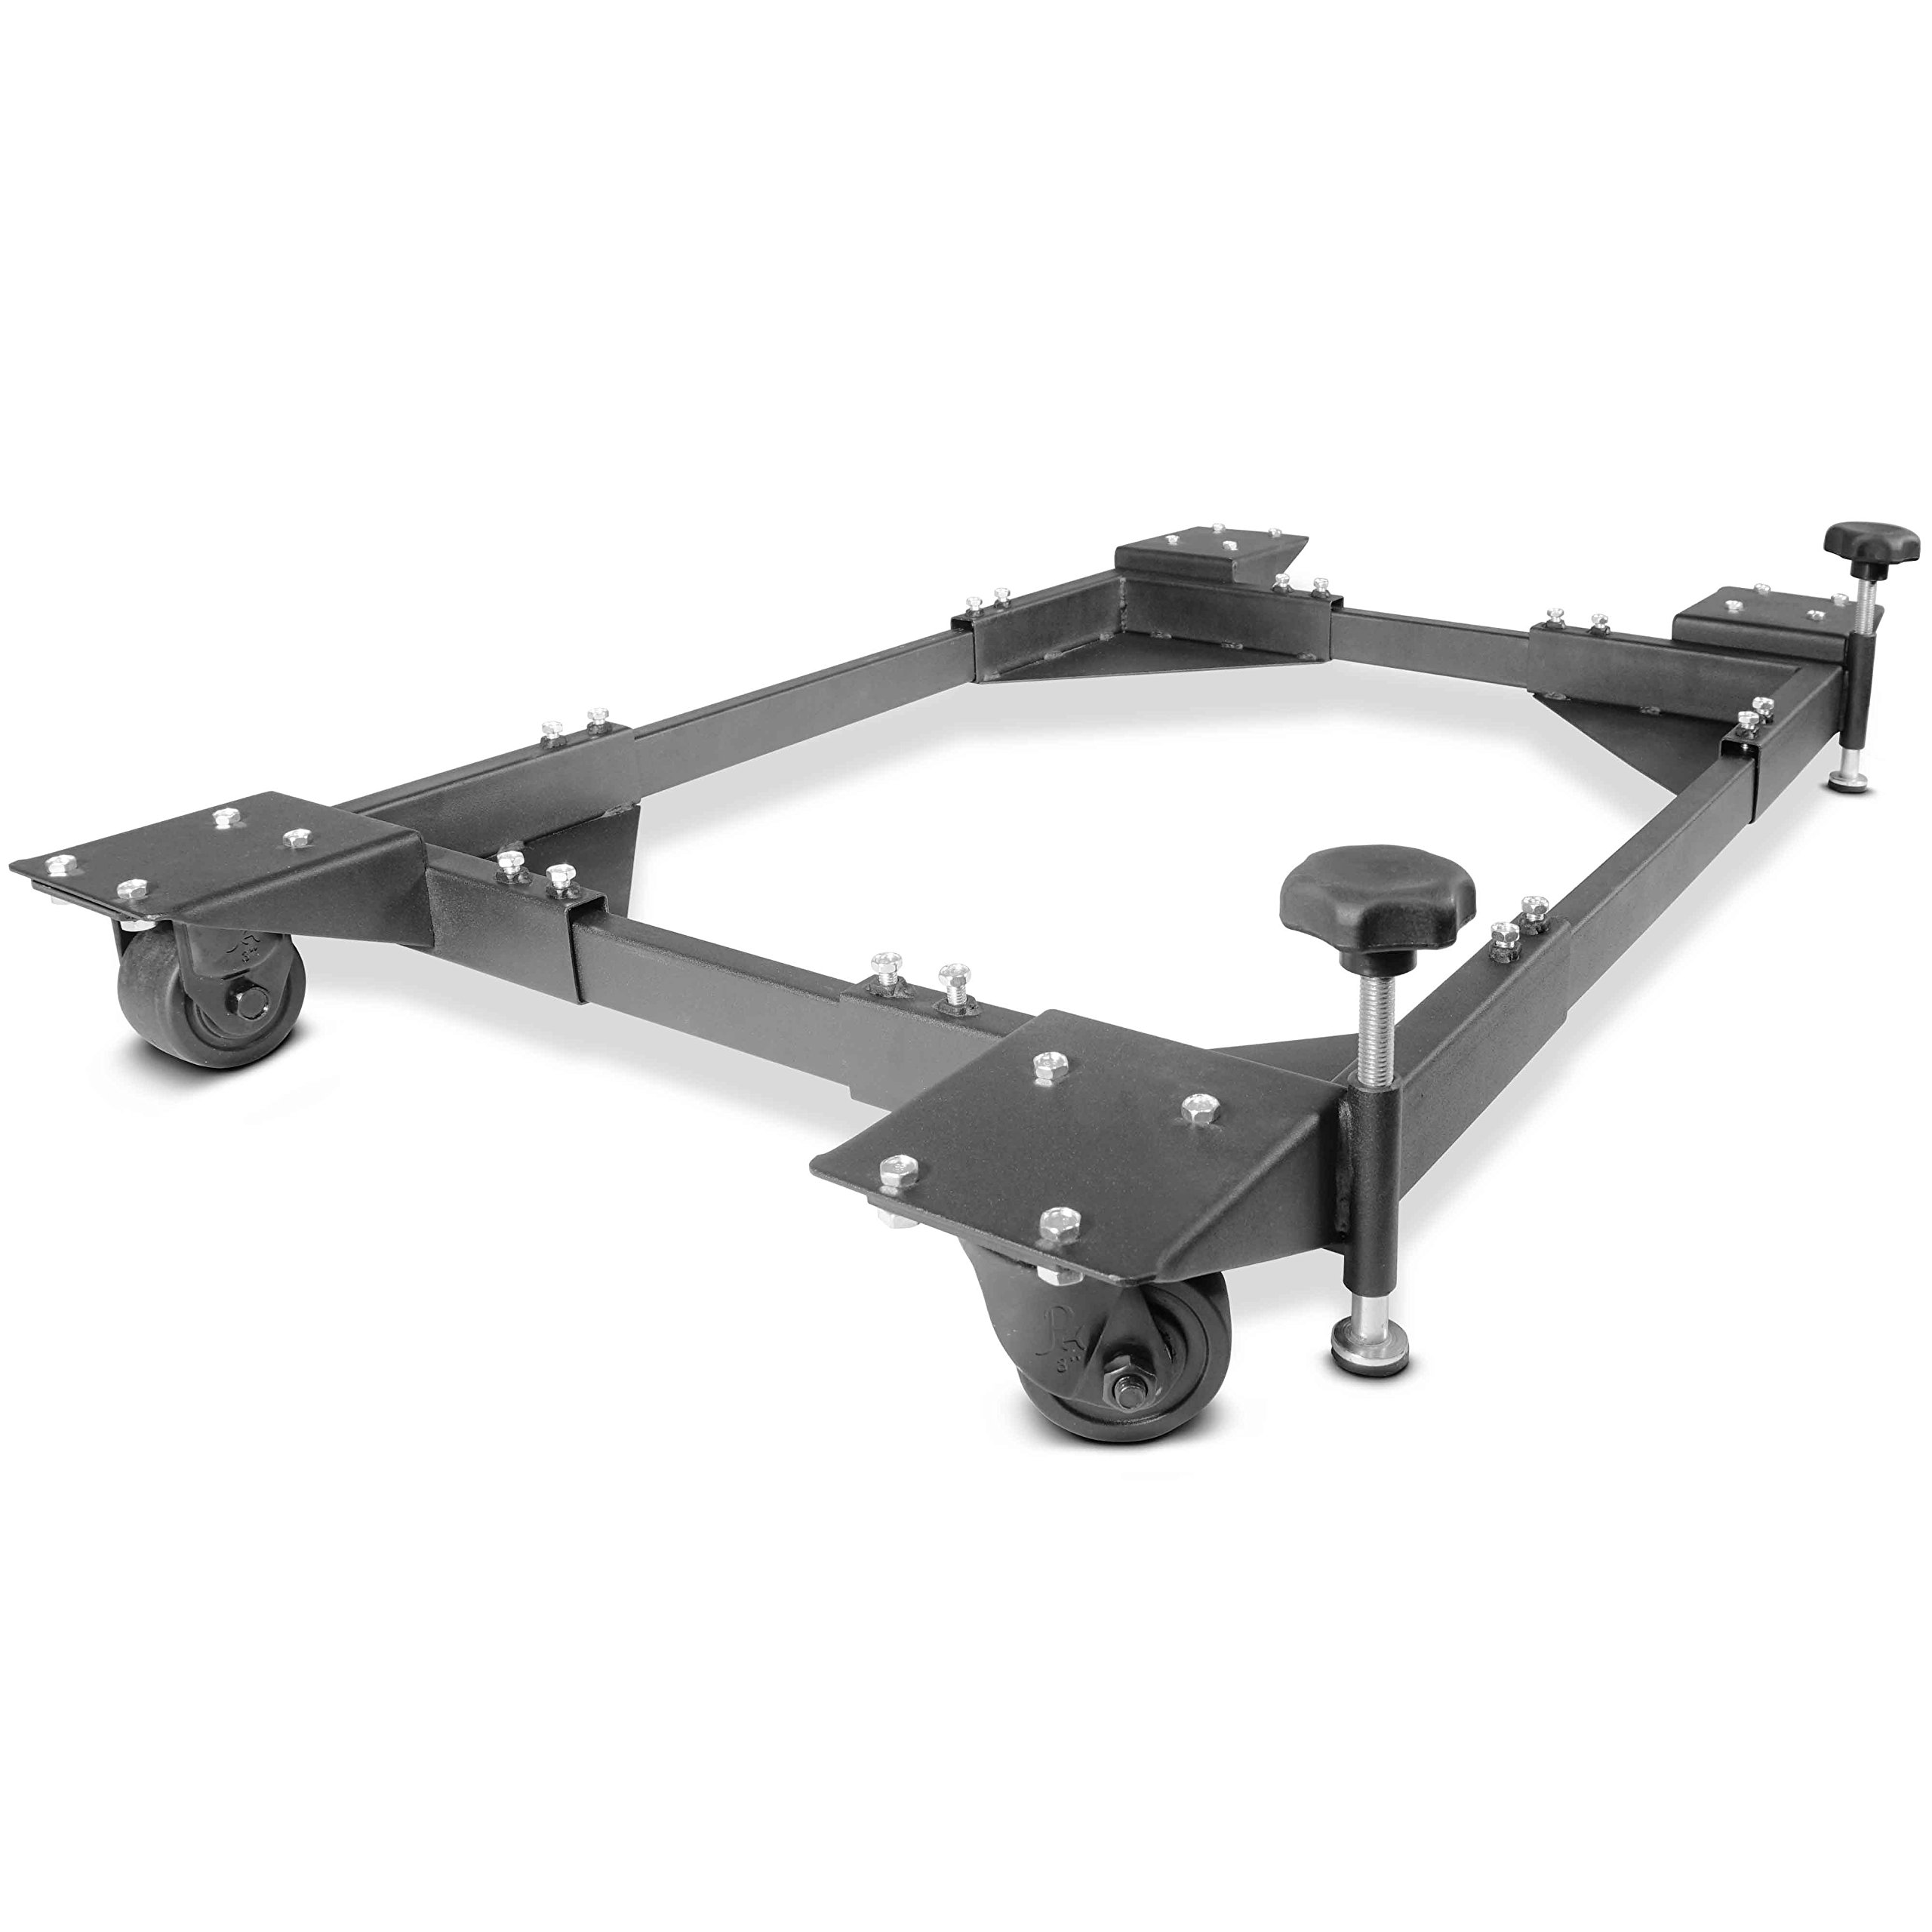 Titan Adjustable Mobile Base Dolly 1200 lb Capacity HD Universal Power Tools - Make Your Workshop Portable & Easy To Use